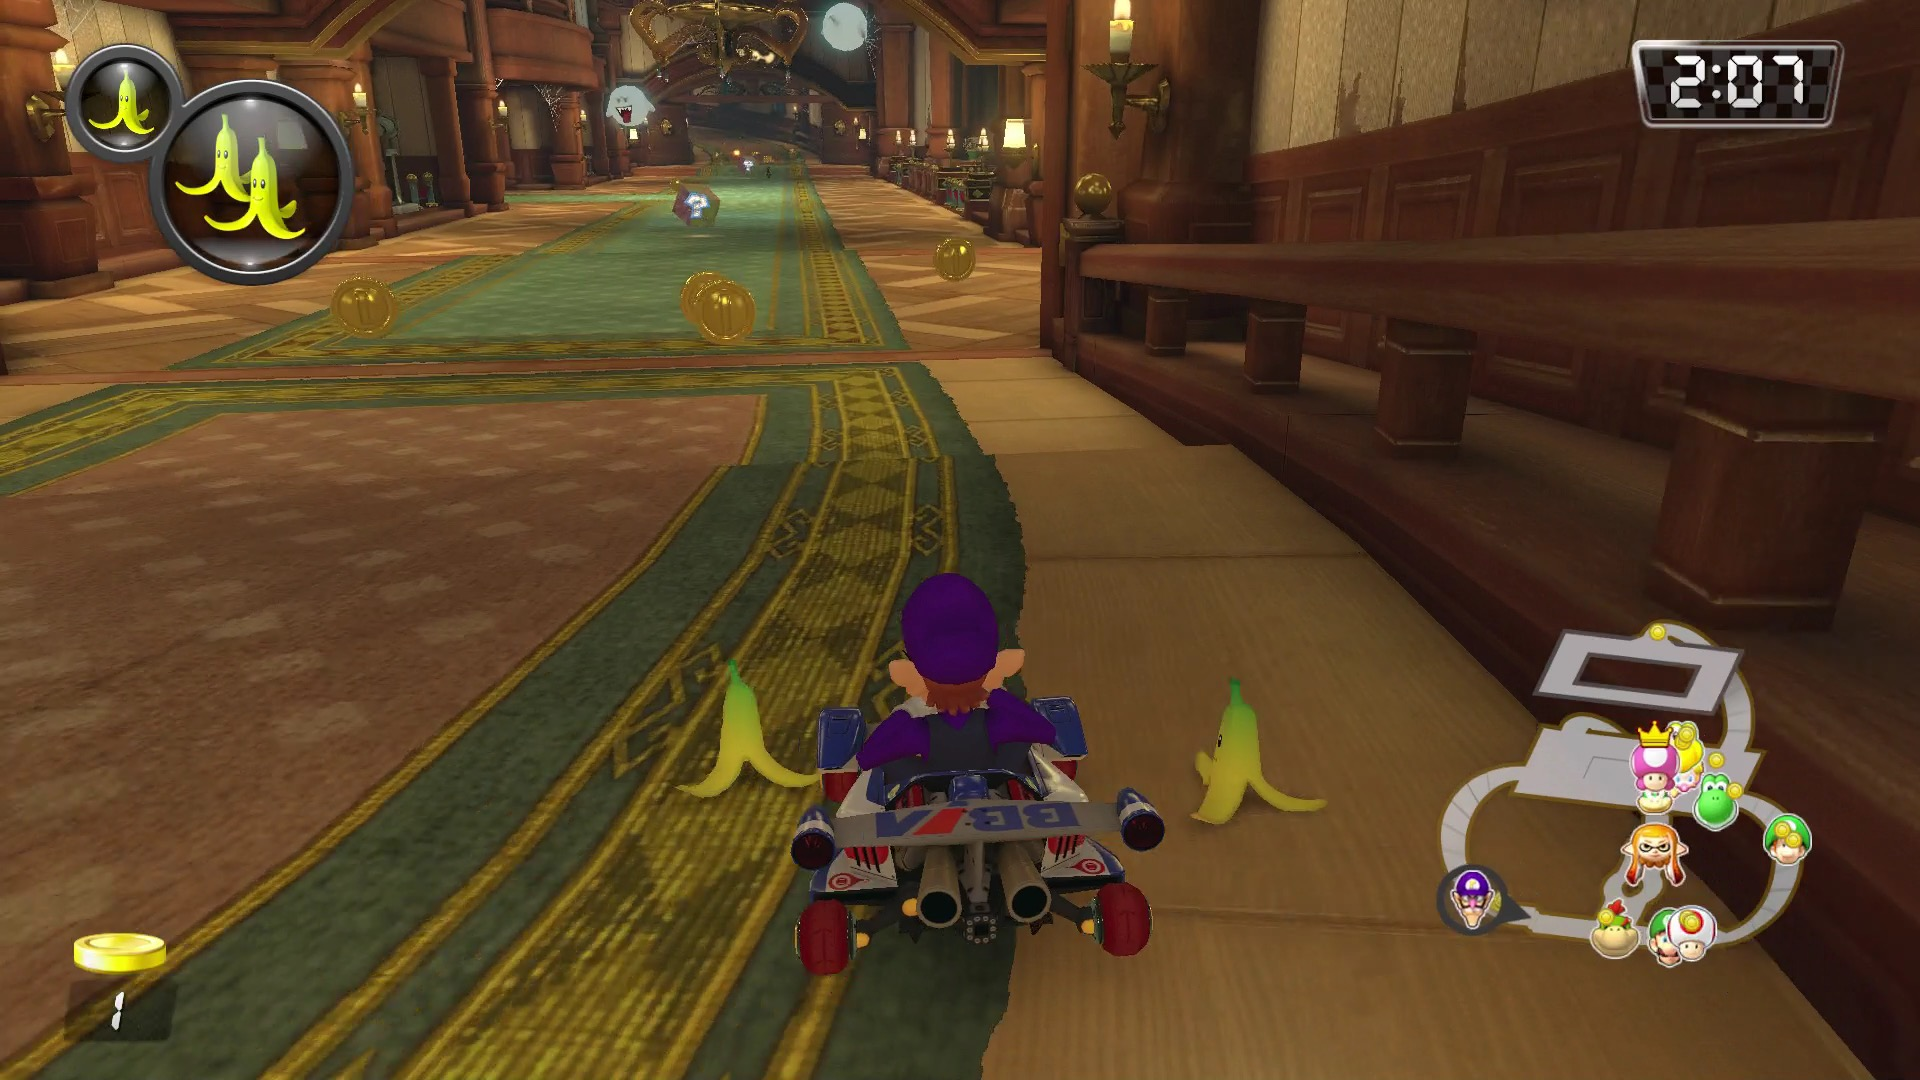 mario kart 8 strategy guide